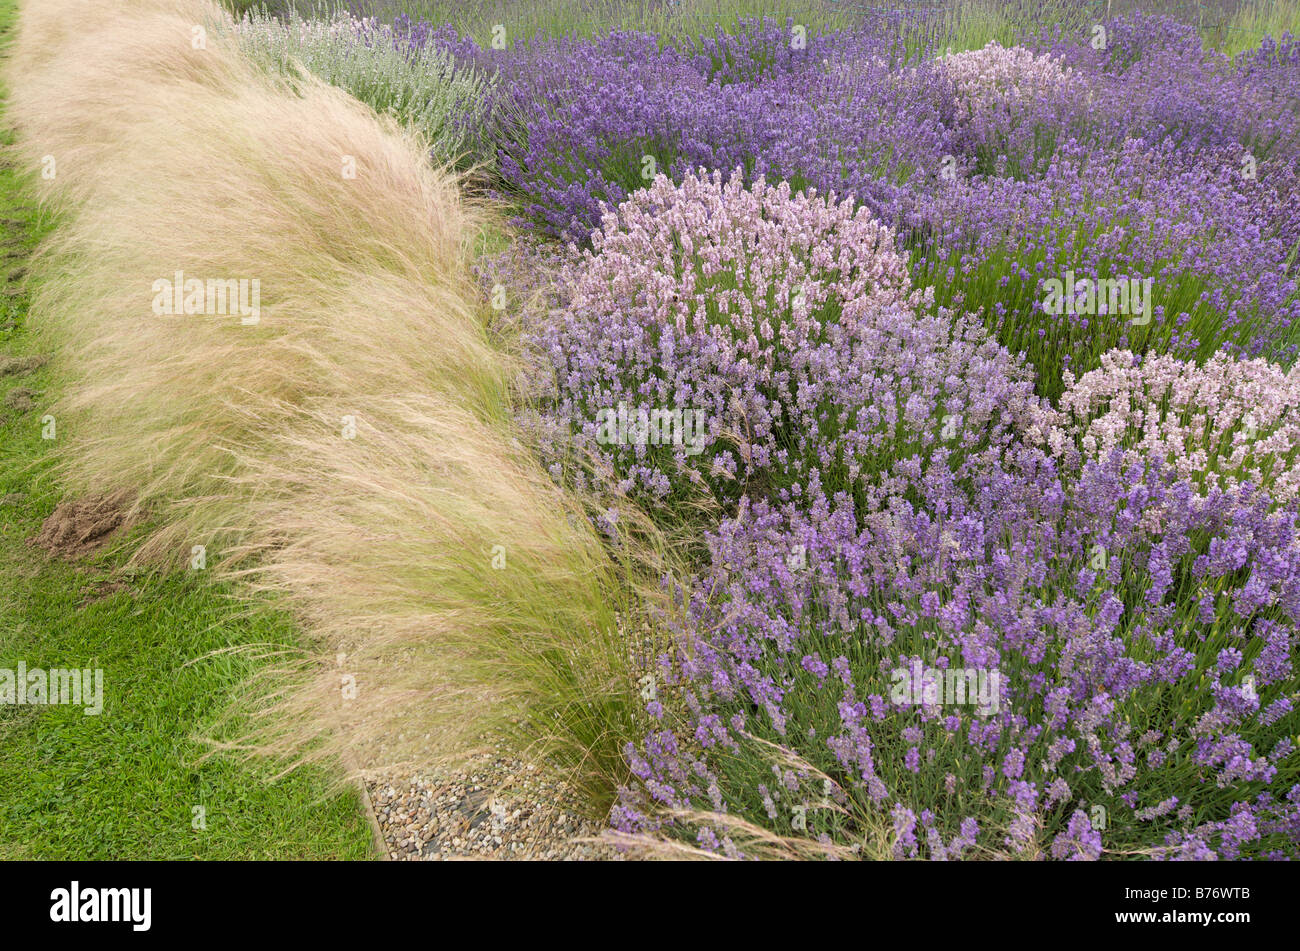 Lavender Garden With Angel Hair Grass   Stipa Tenuissima   Stock Image